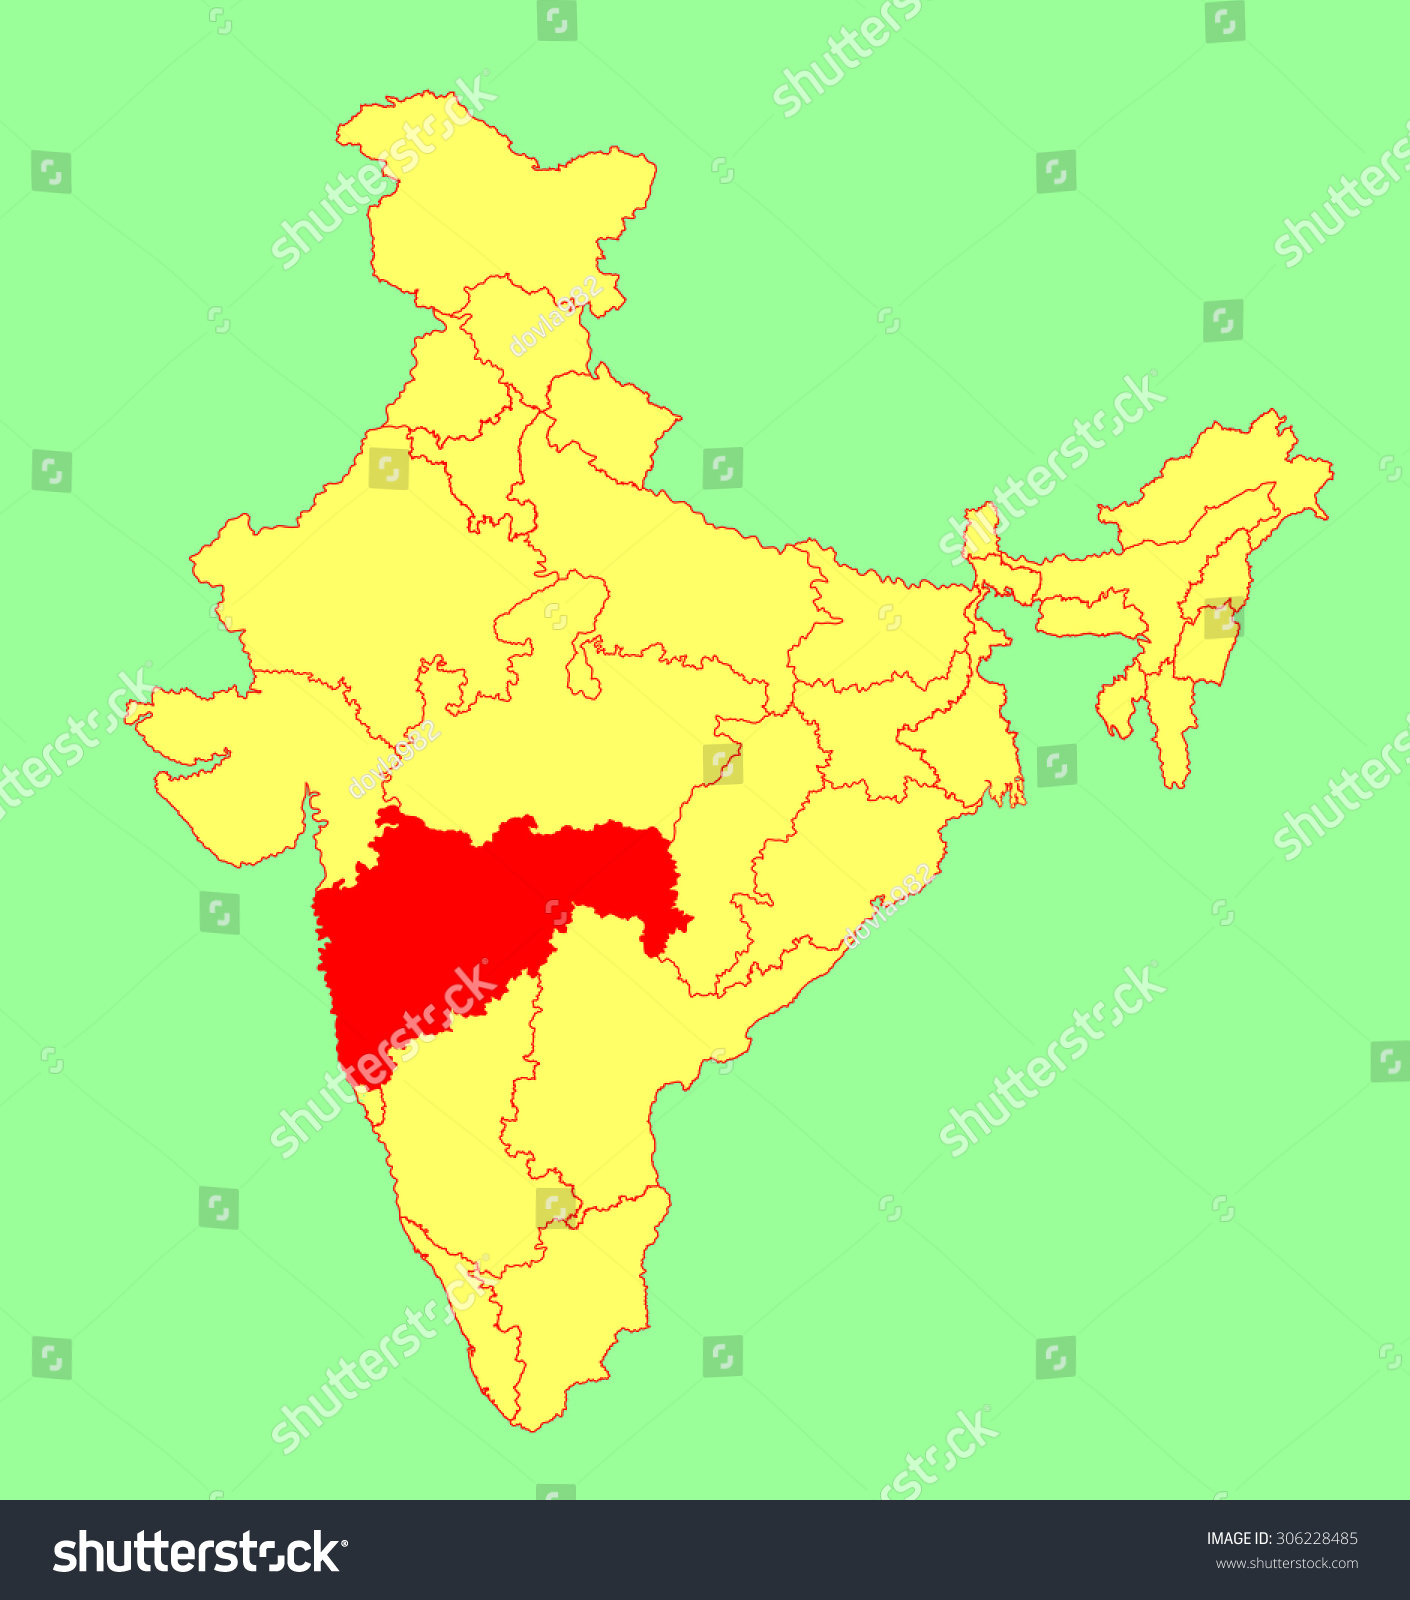 maharashtra state india vector map silhouette stock vector